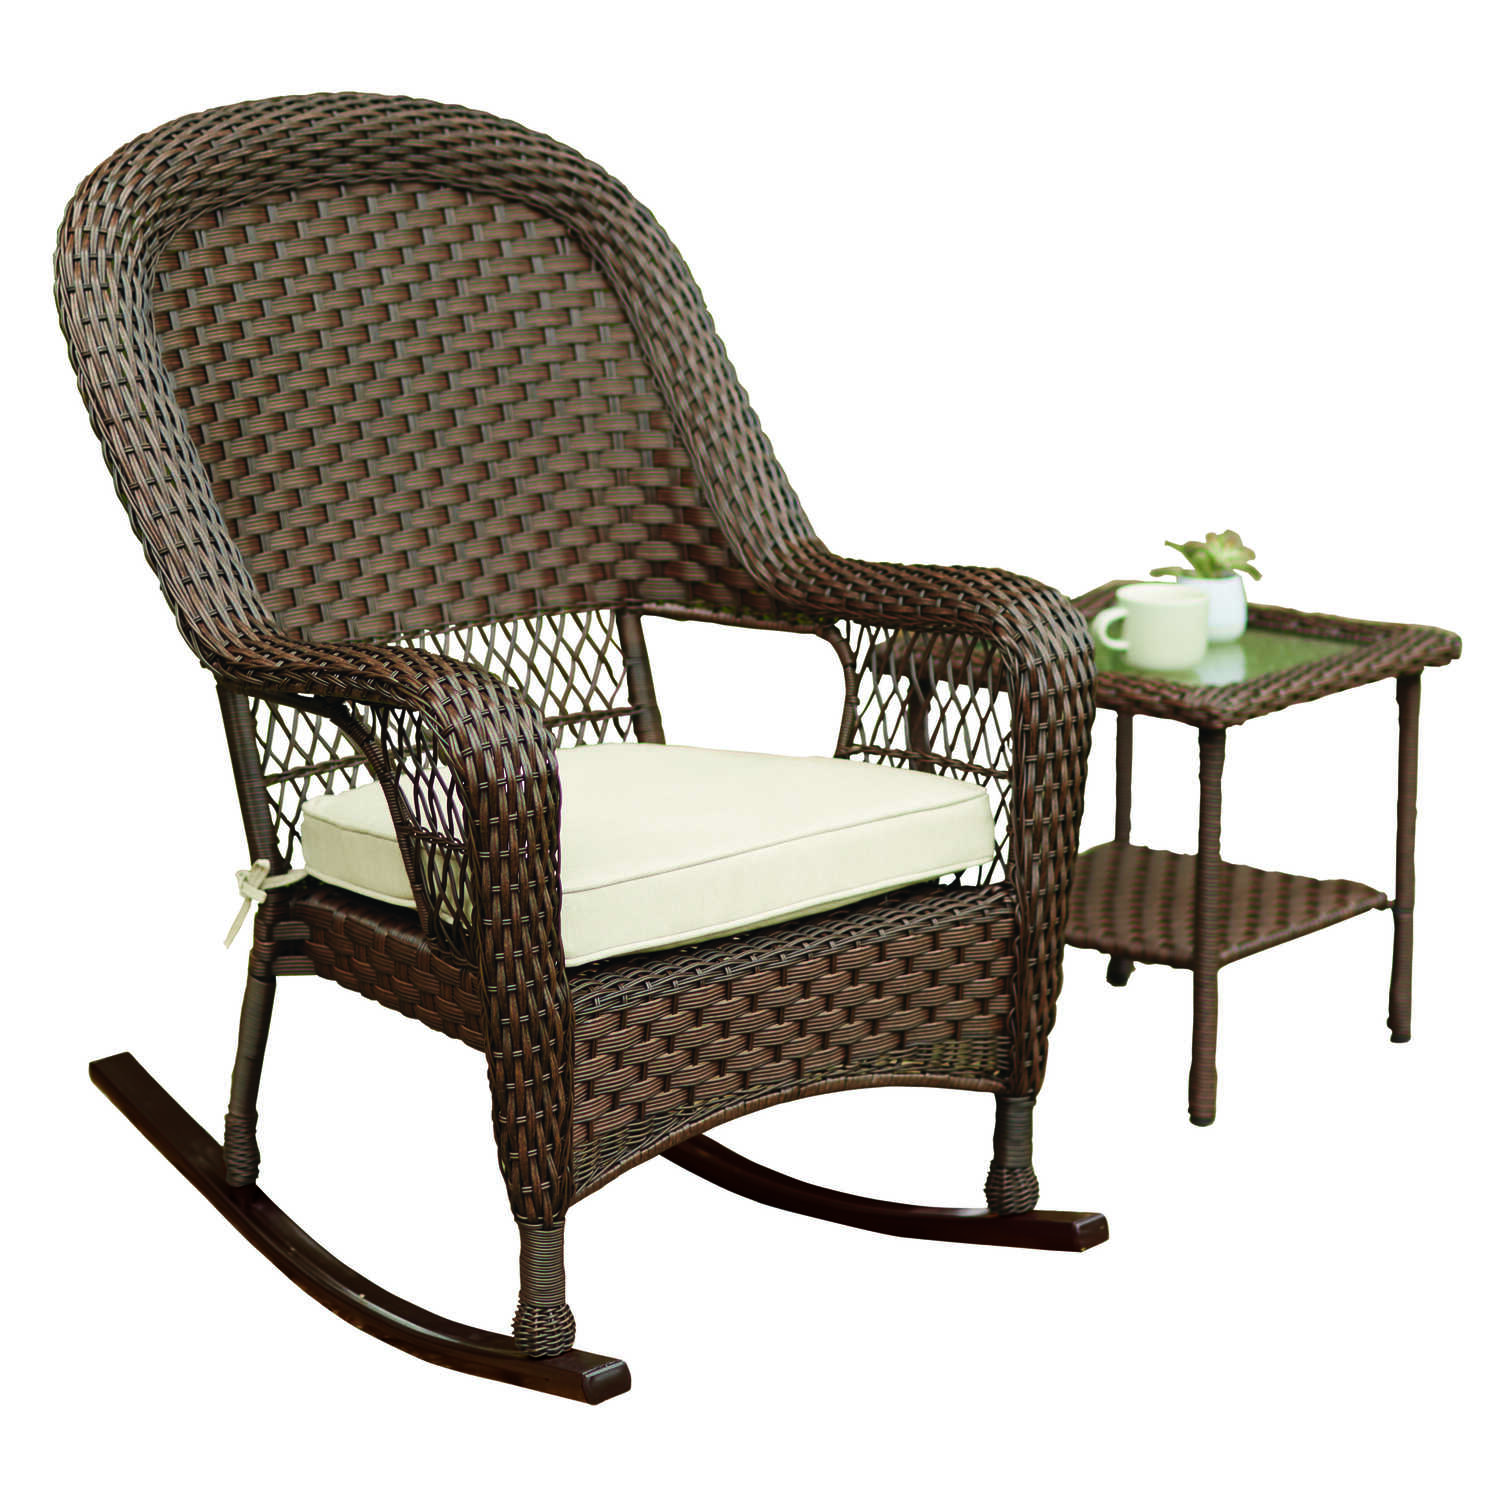 Tremendous Living Accents 1 Brown Steel Prescott Rocker Chair Ace Onthecornerstone Fun Painted Chair Ideas Images Onthecornerstoneorg